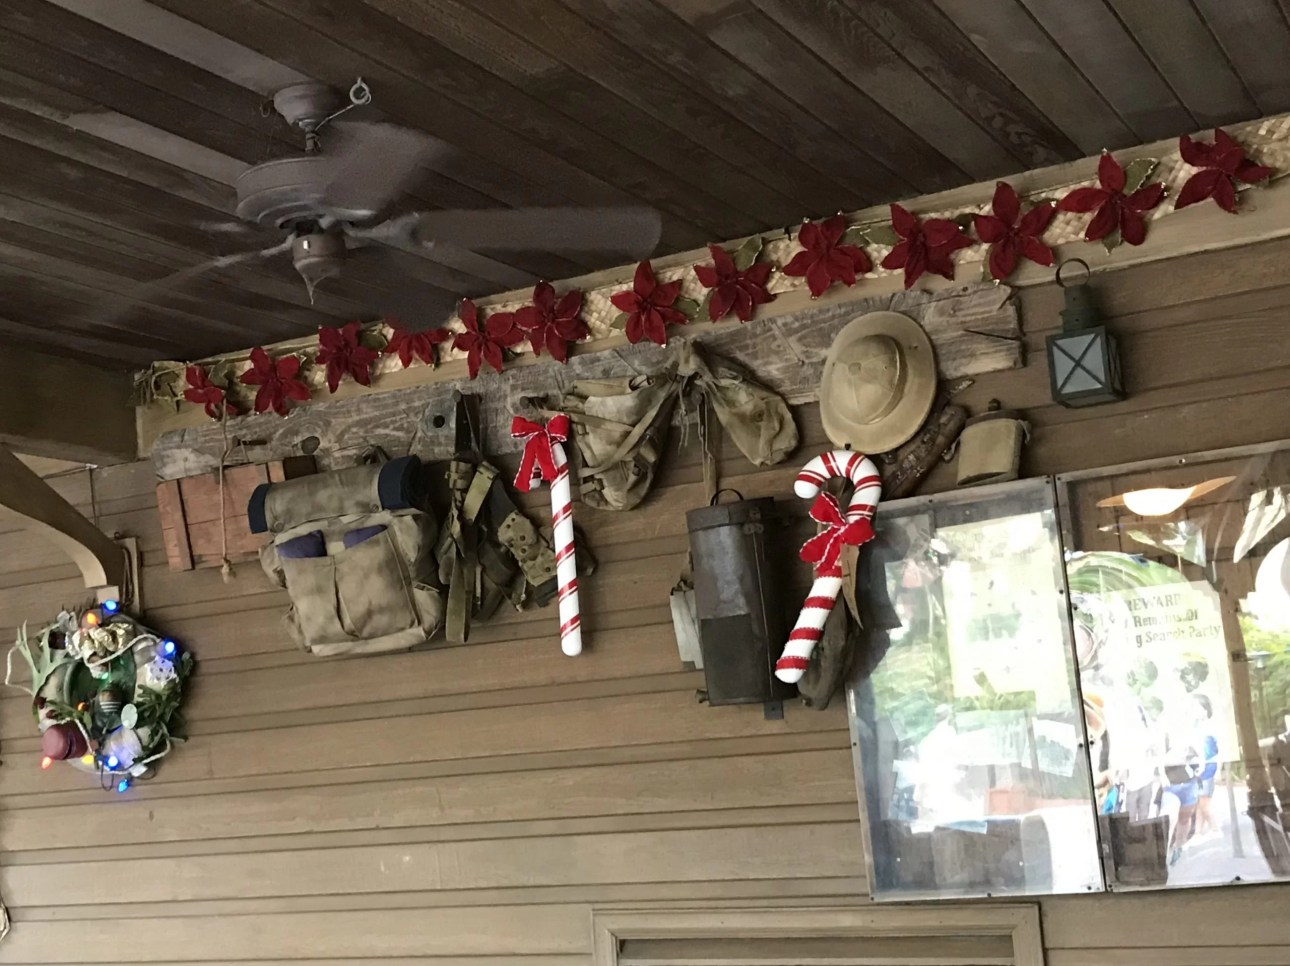 candy cane, wreaths, and poinsettias adorn the walls of the Jingle Cruise (Jungle) queue during Christmas